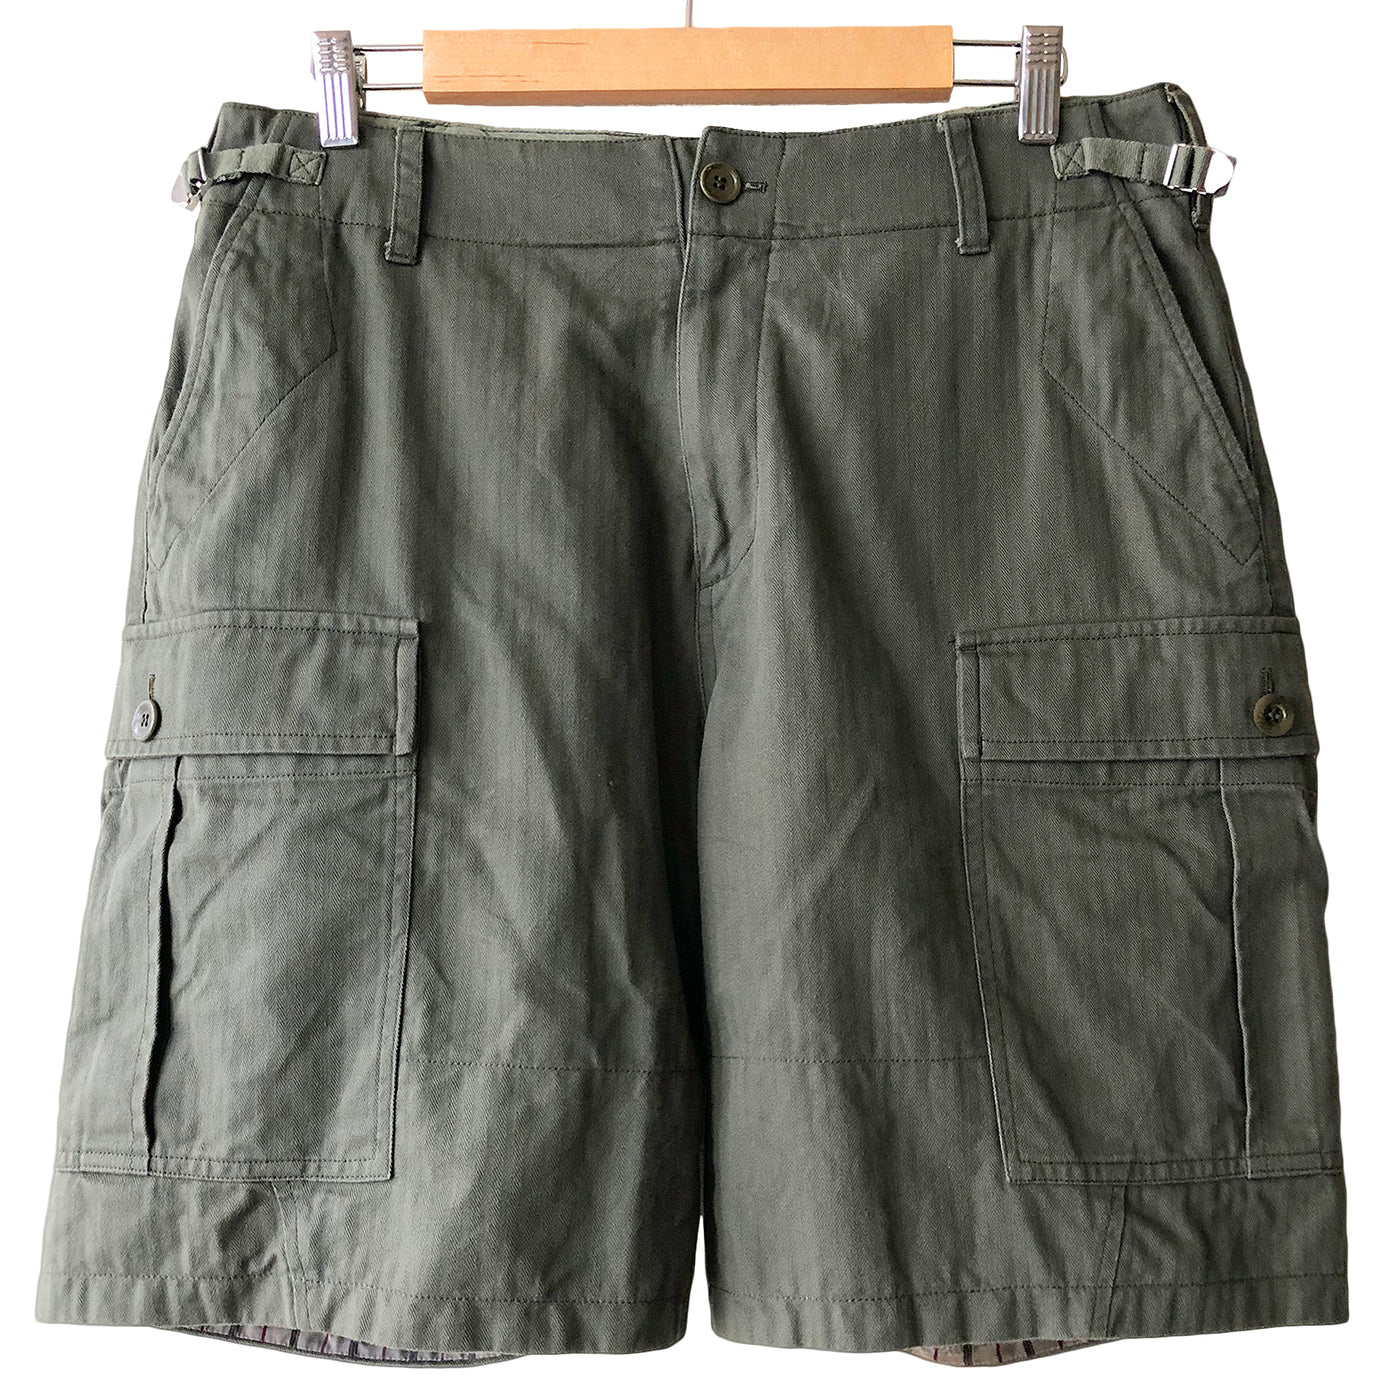 Undercover Military Green Cargo Shorts - SS17